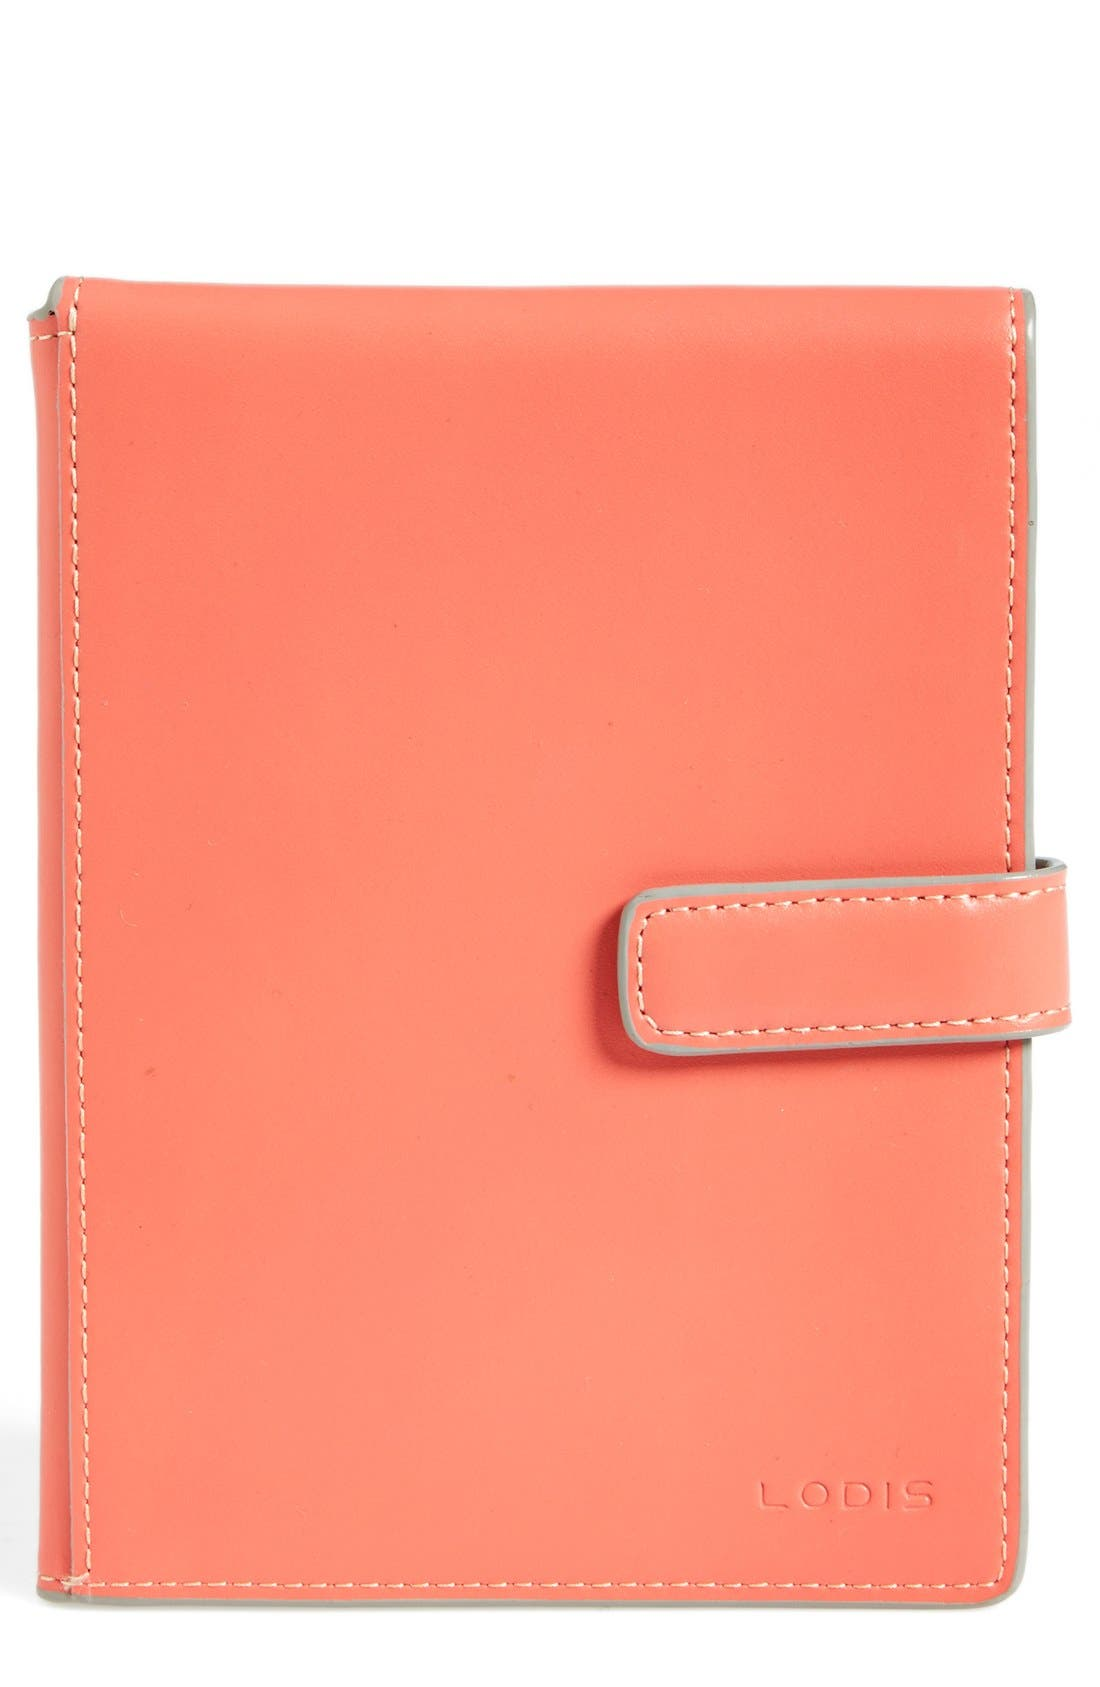 Alternate Image 1 Selected - Lodis 'Audrey' Passport Wallet